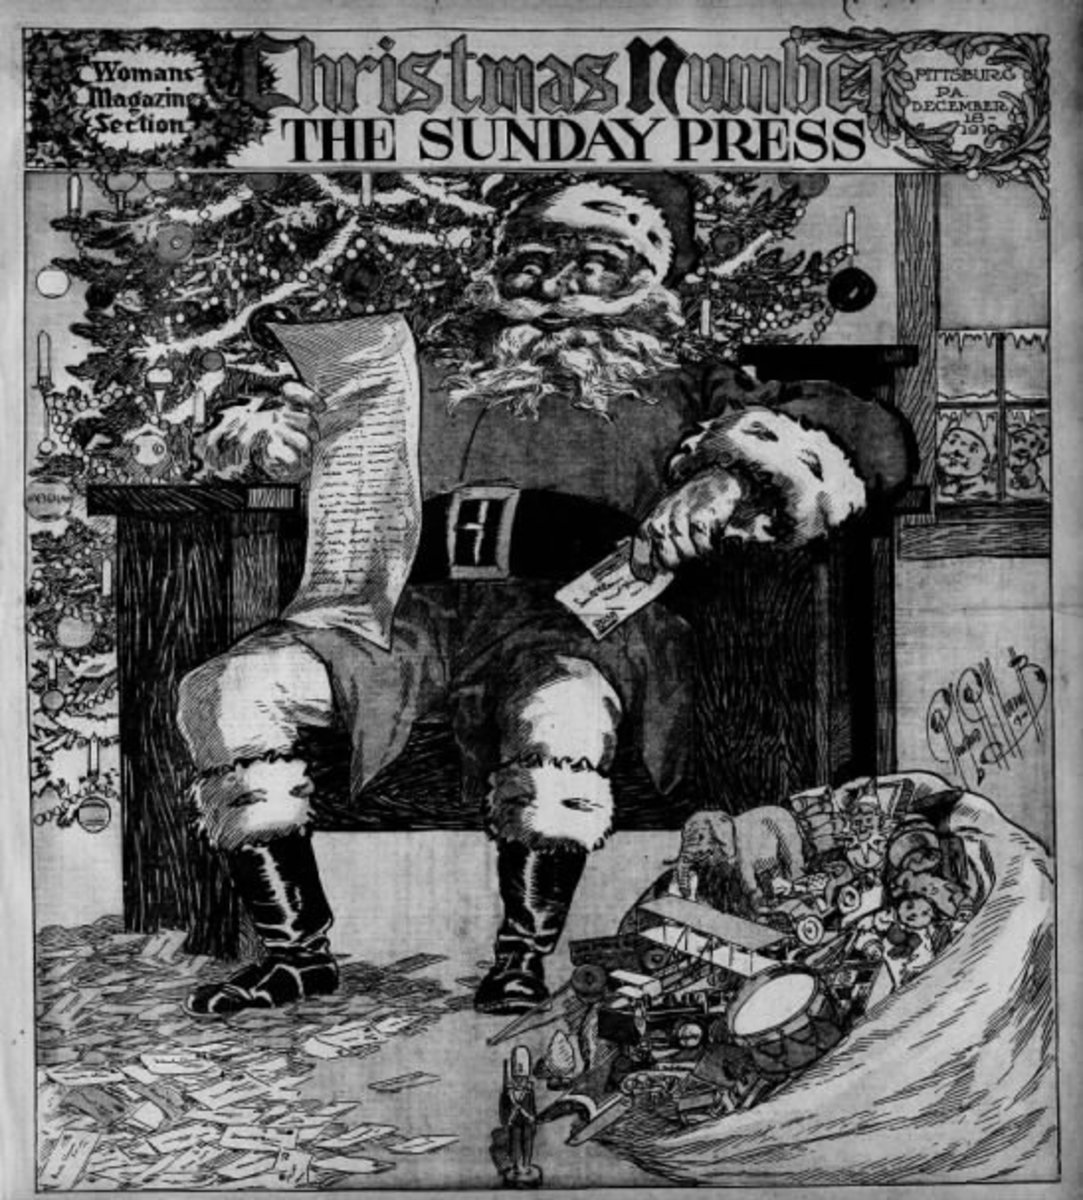 What Was Christmas Like in 1910?